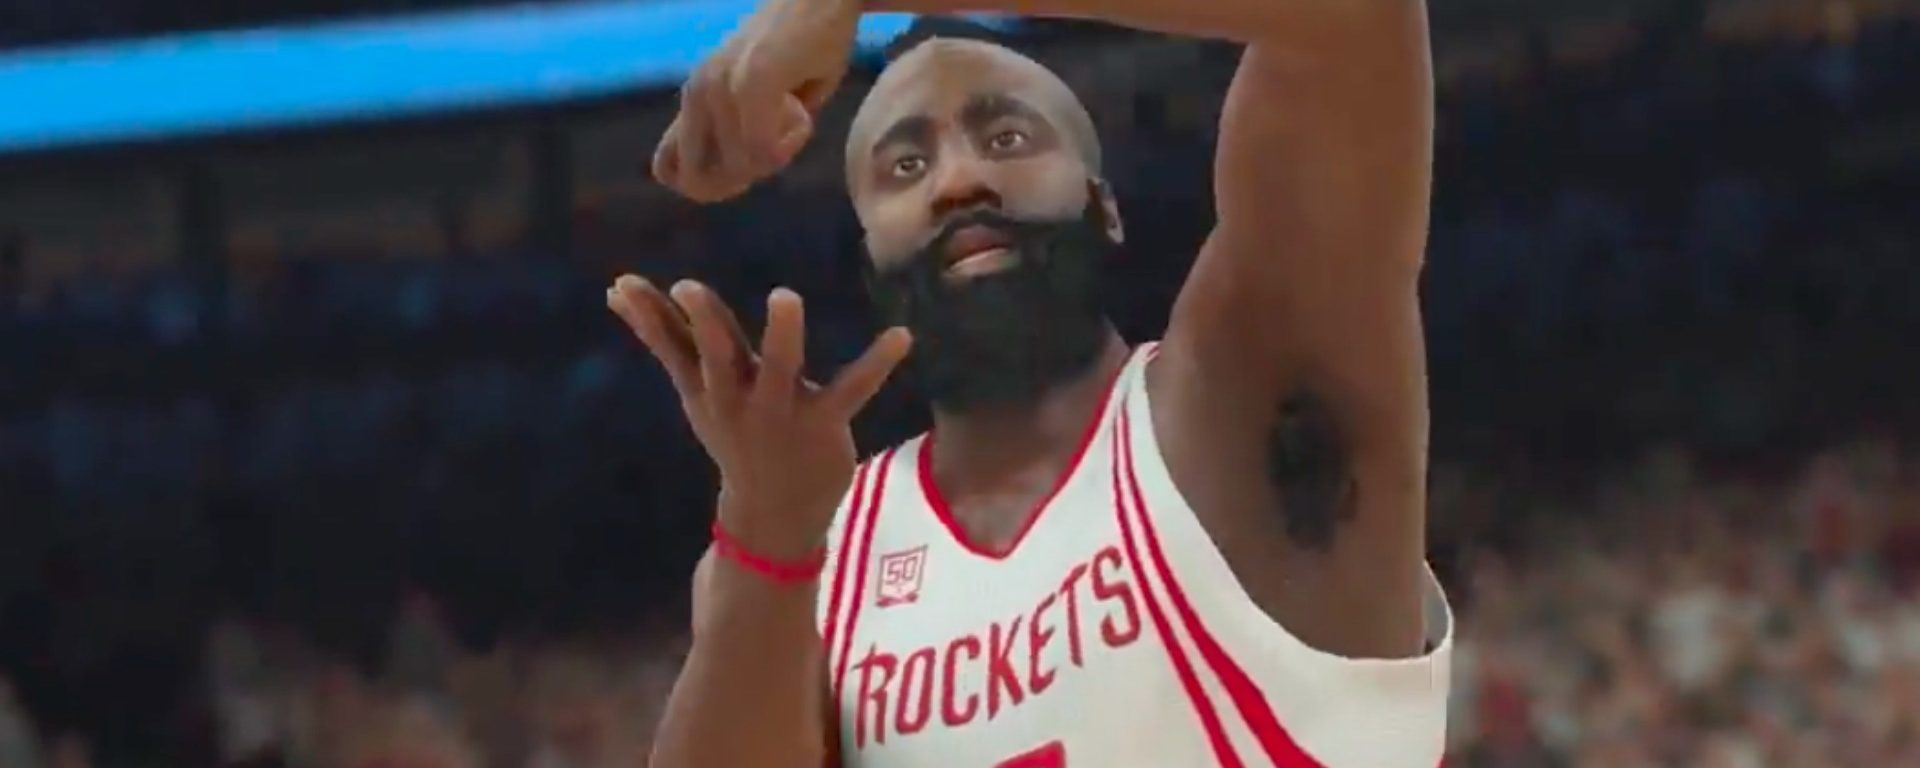 Rocket League and NBA 2k17 Free to Play this Weekend